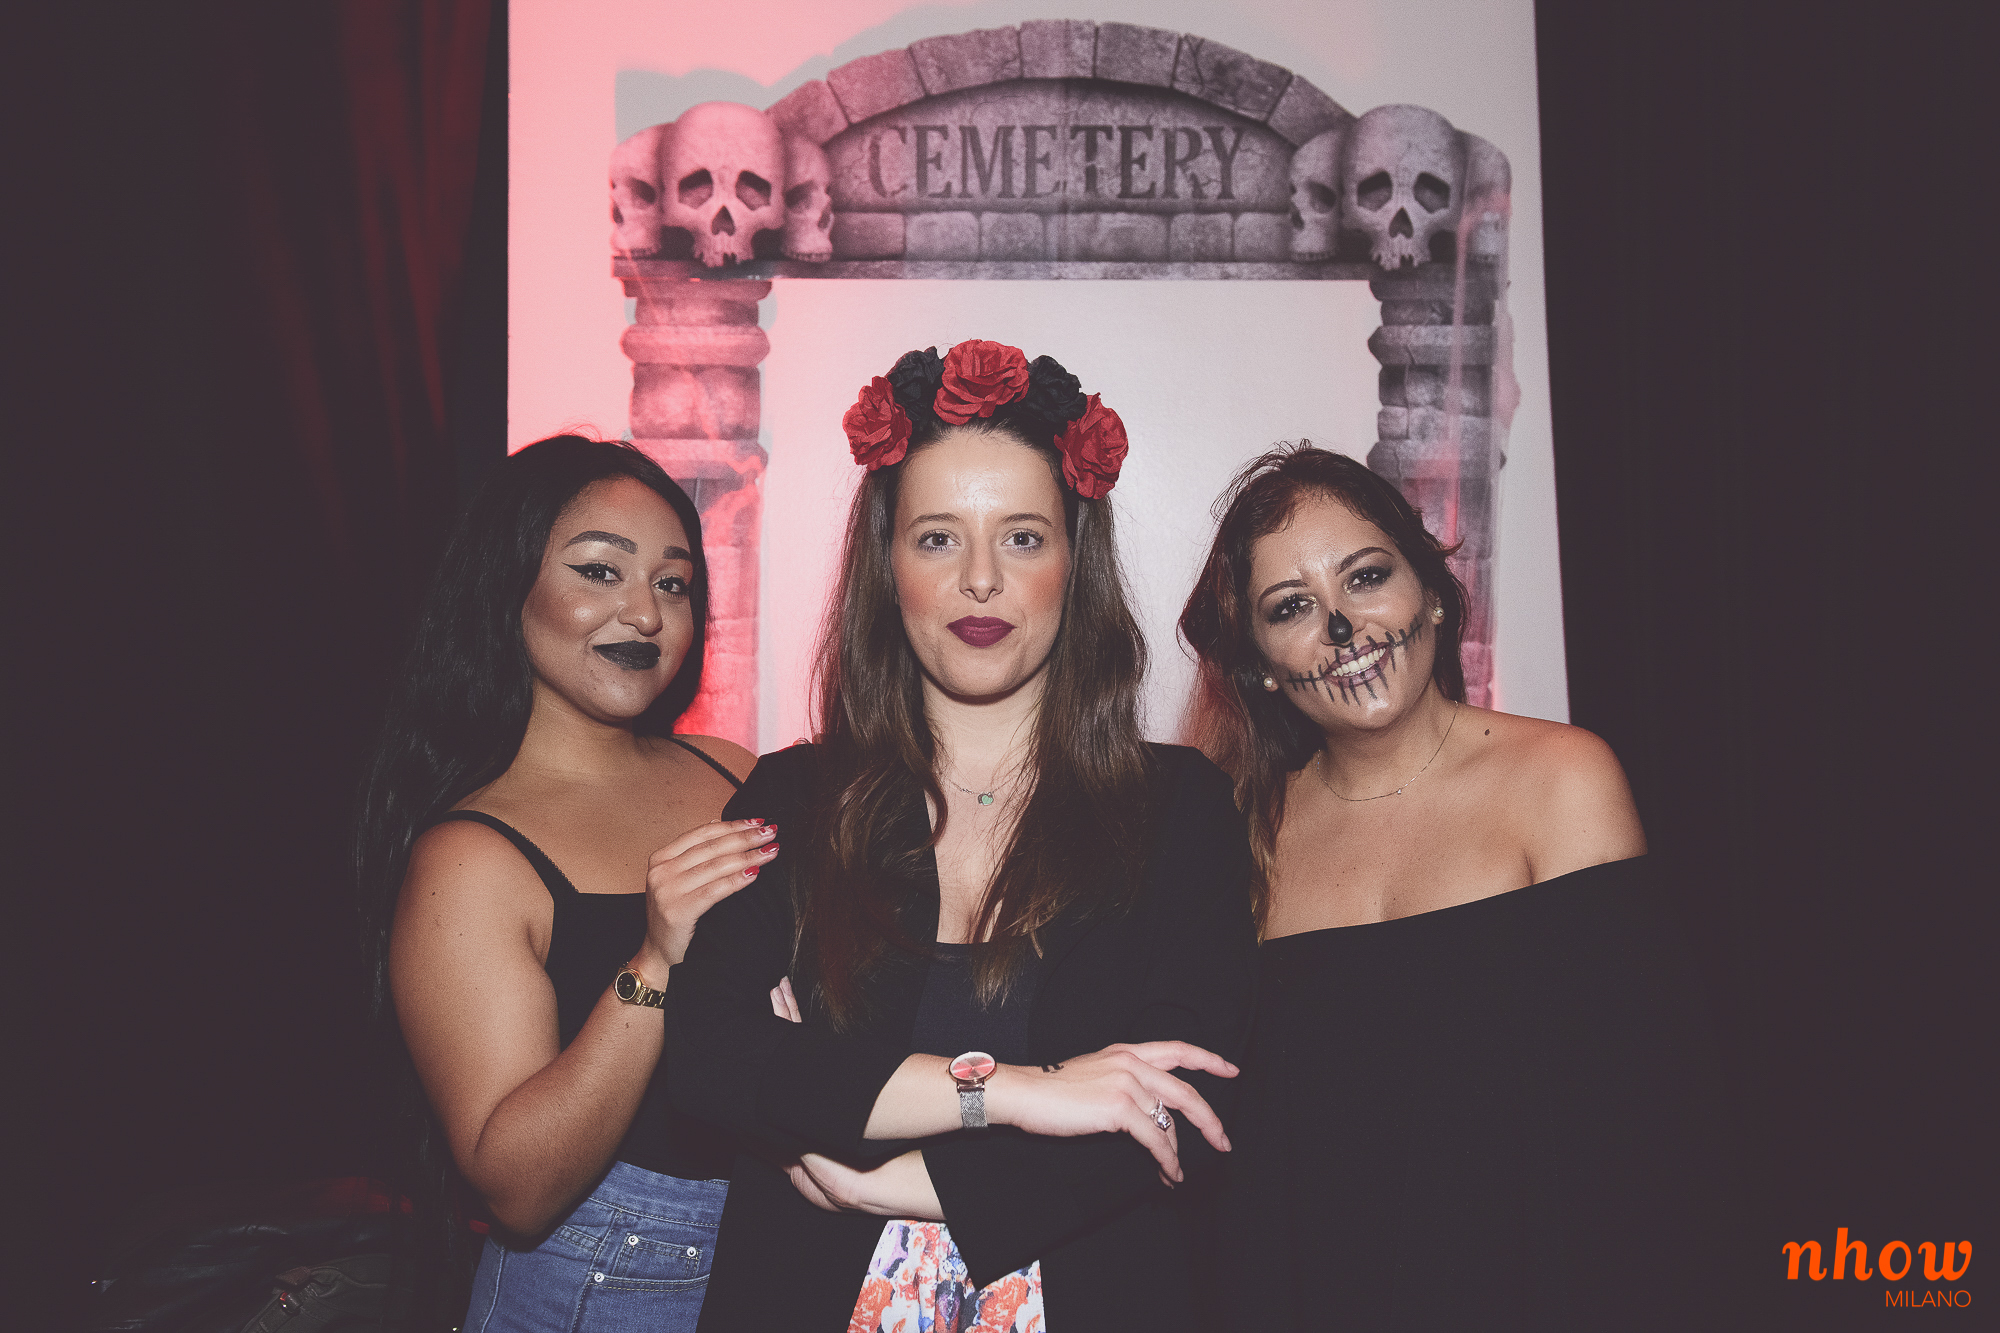 Dead Celebrities | Halloween Private Party | YOUparti nhow hotel 31 ottobre